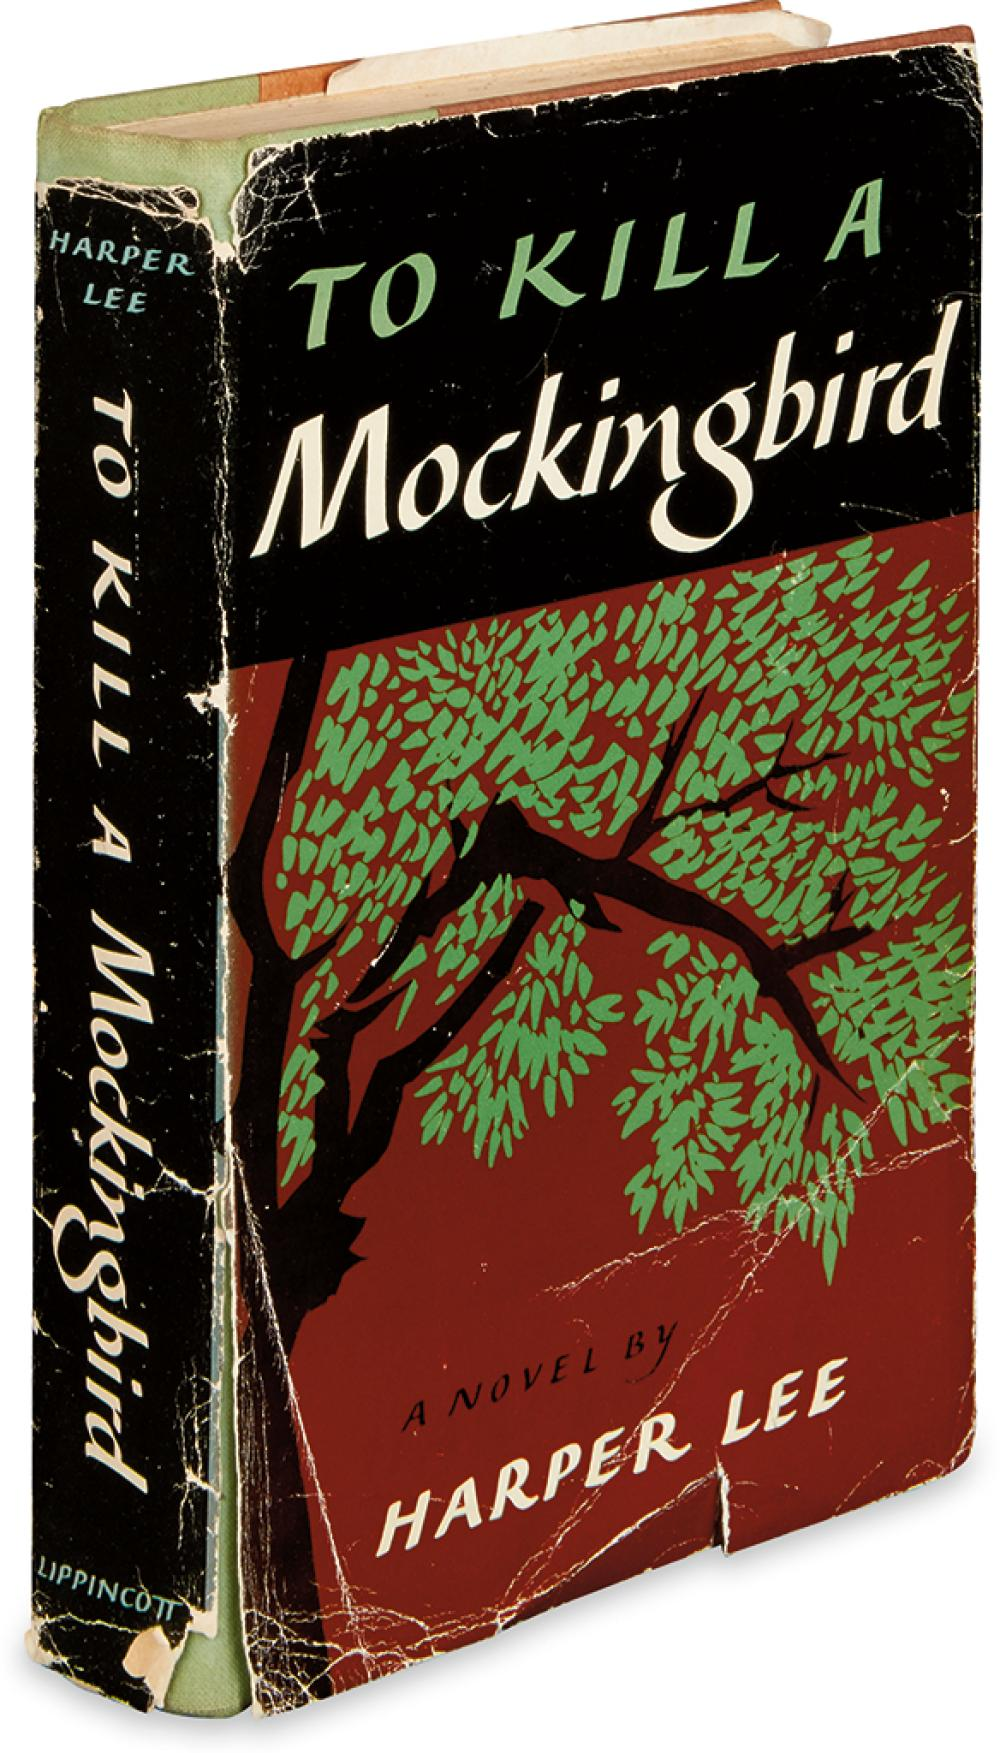 LEE, HARPER. To Kill A Mockingbird.